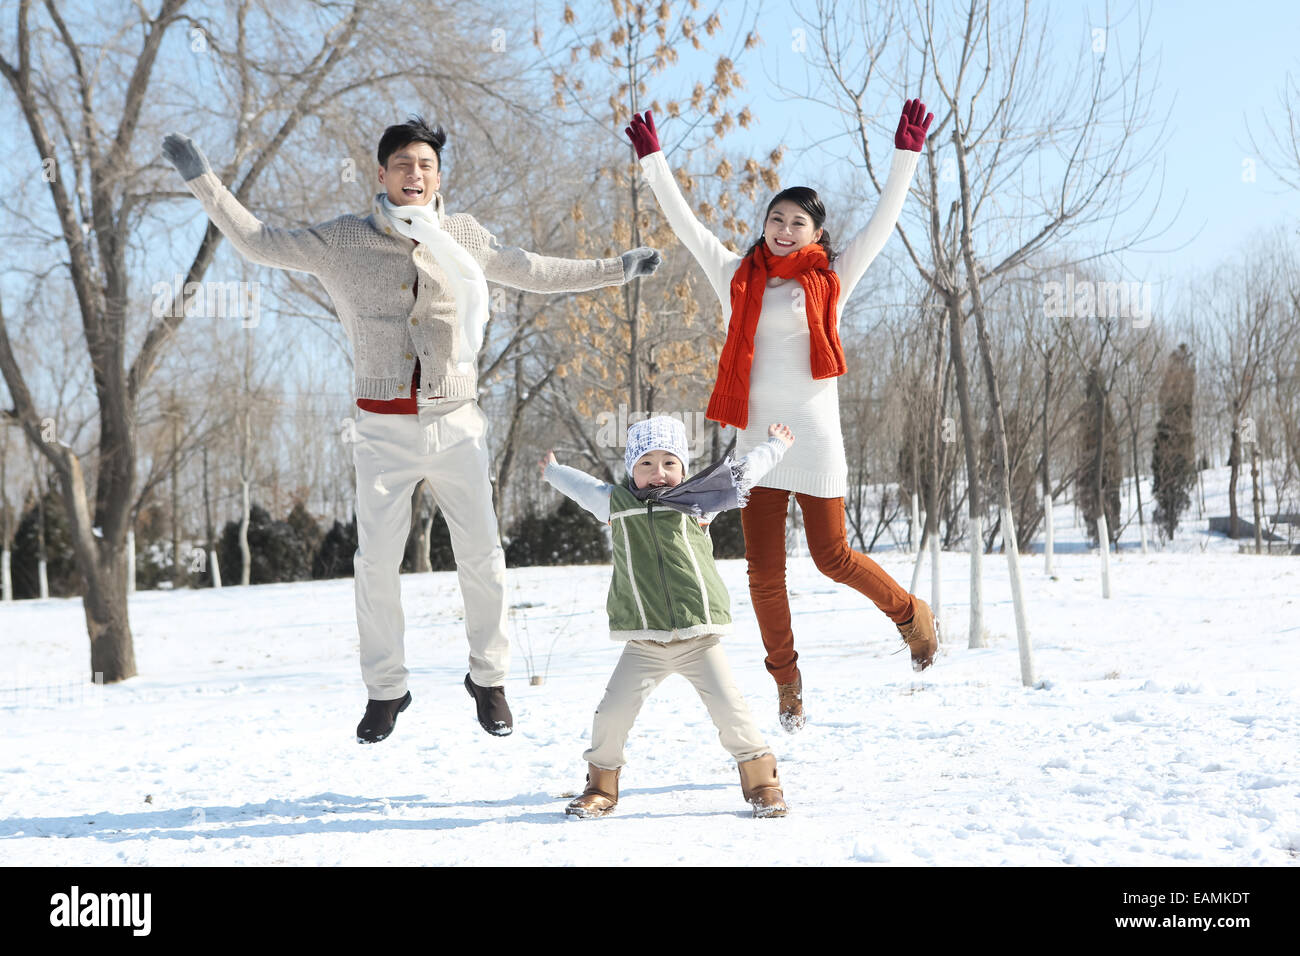 One-child families play in the snow - Stock Image